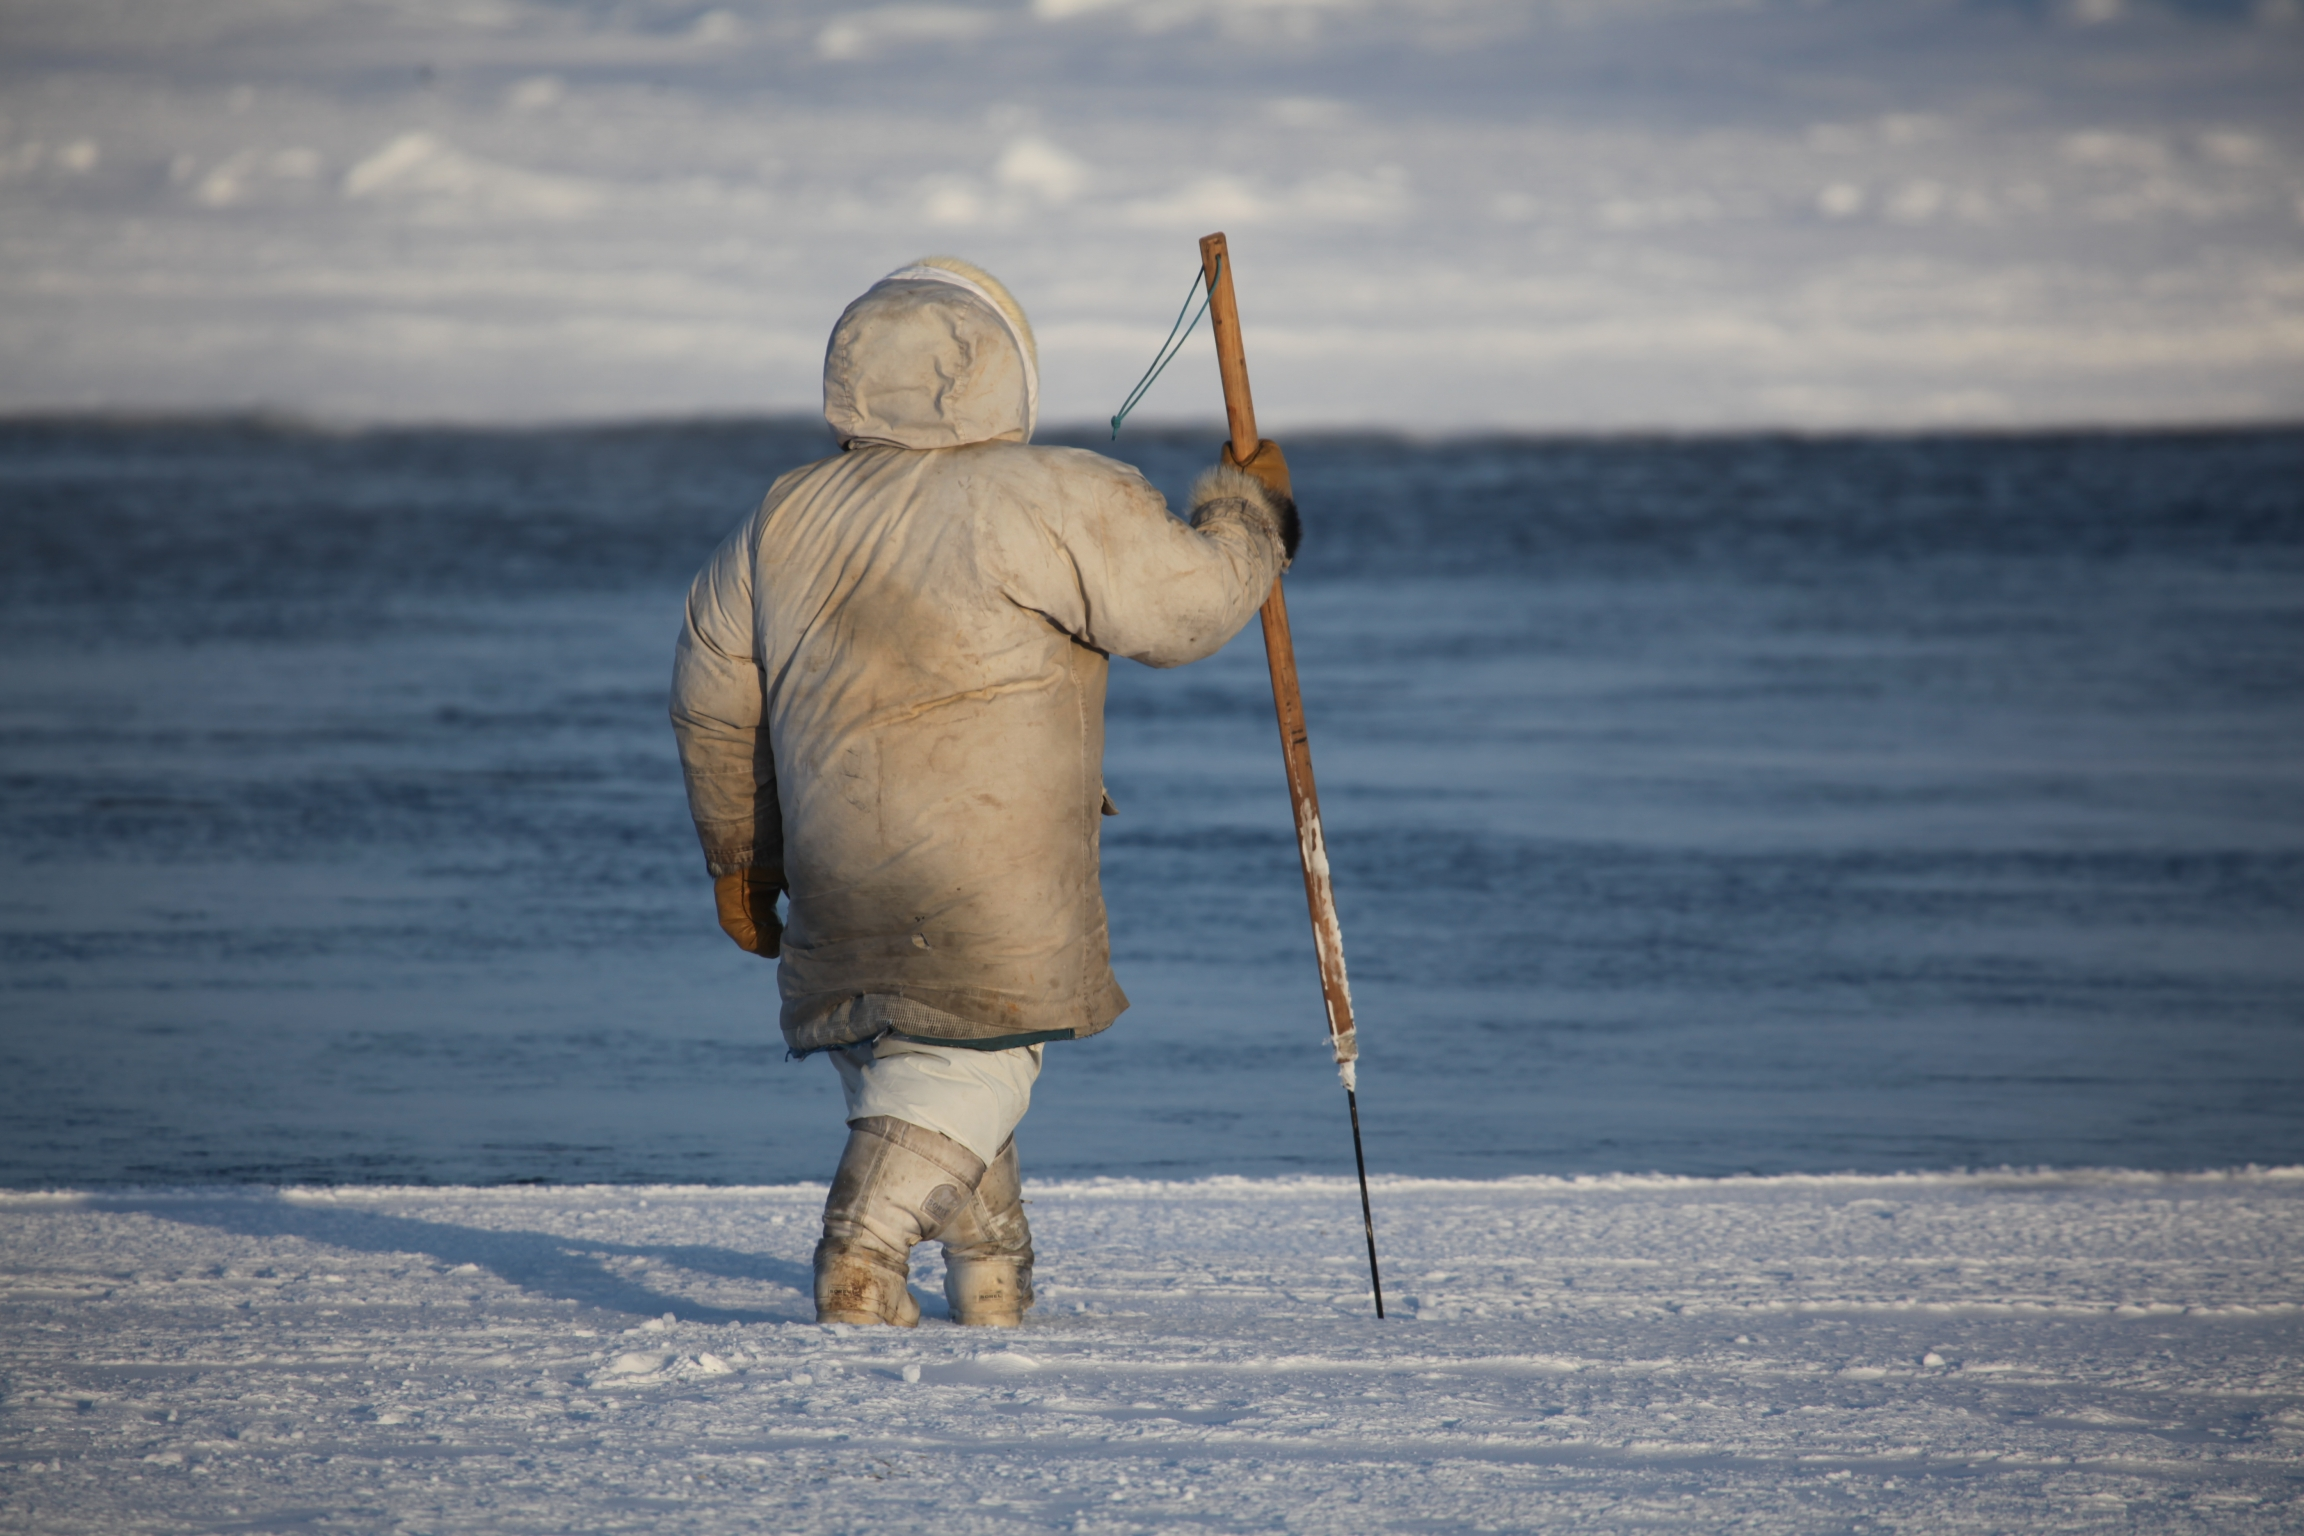 A hunter wearing a white jacket uses his harpoon to check the thickness of the ice for safety while crossing.